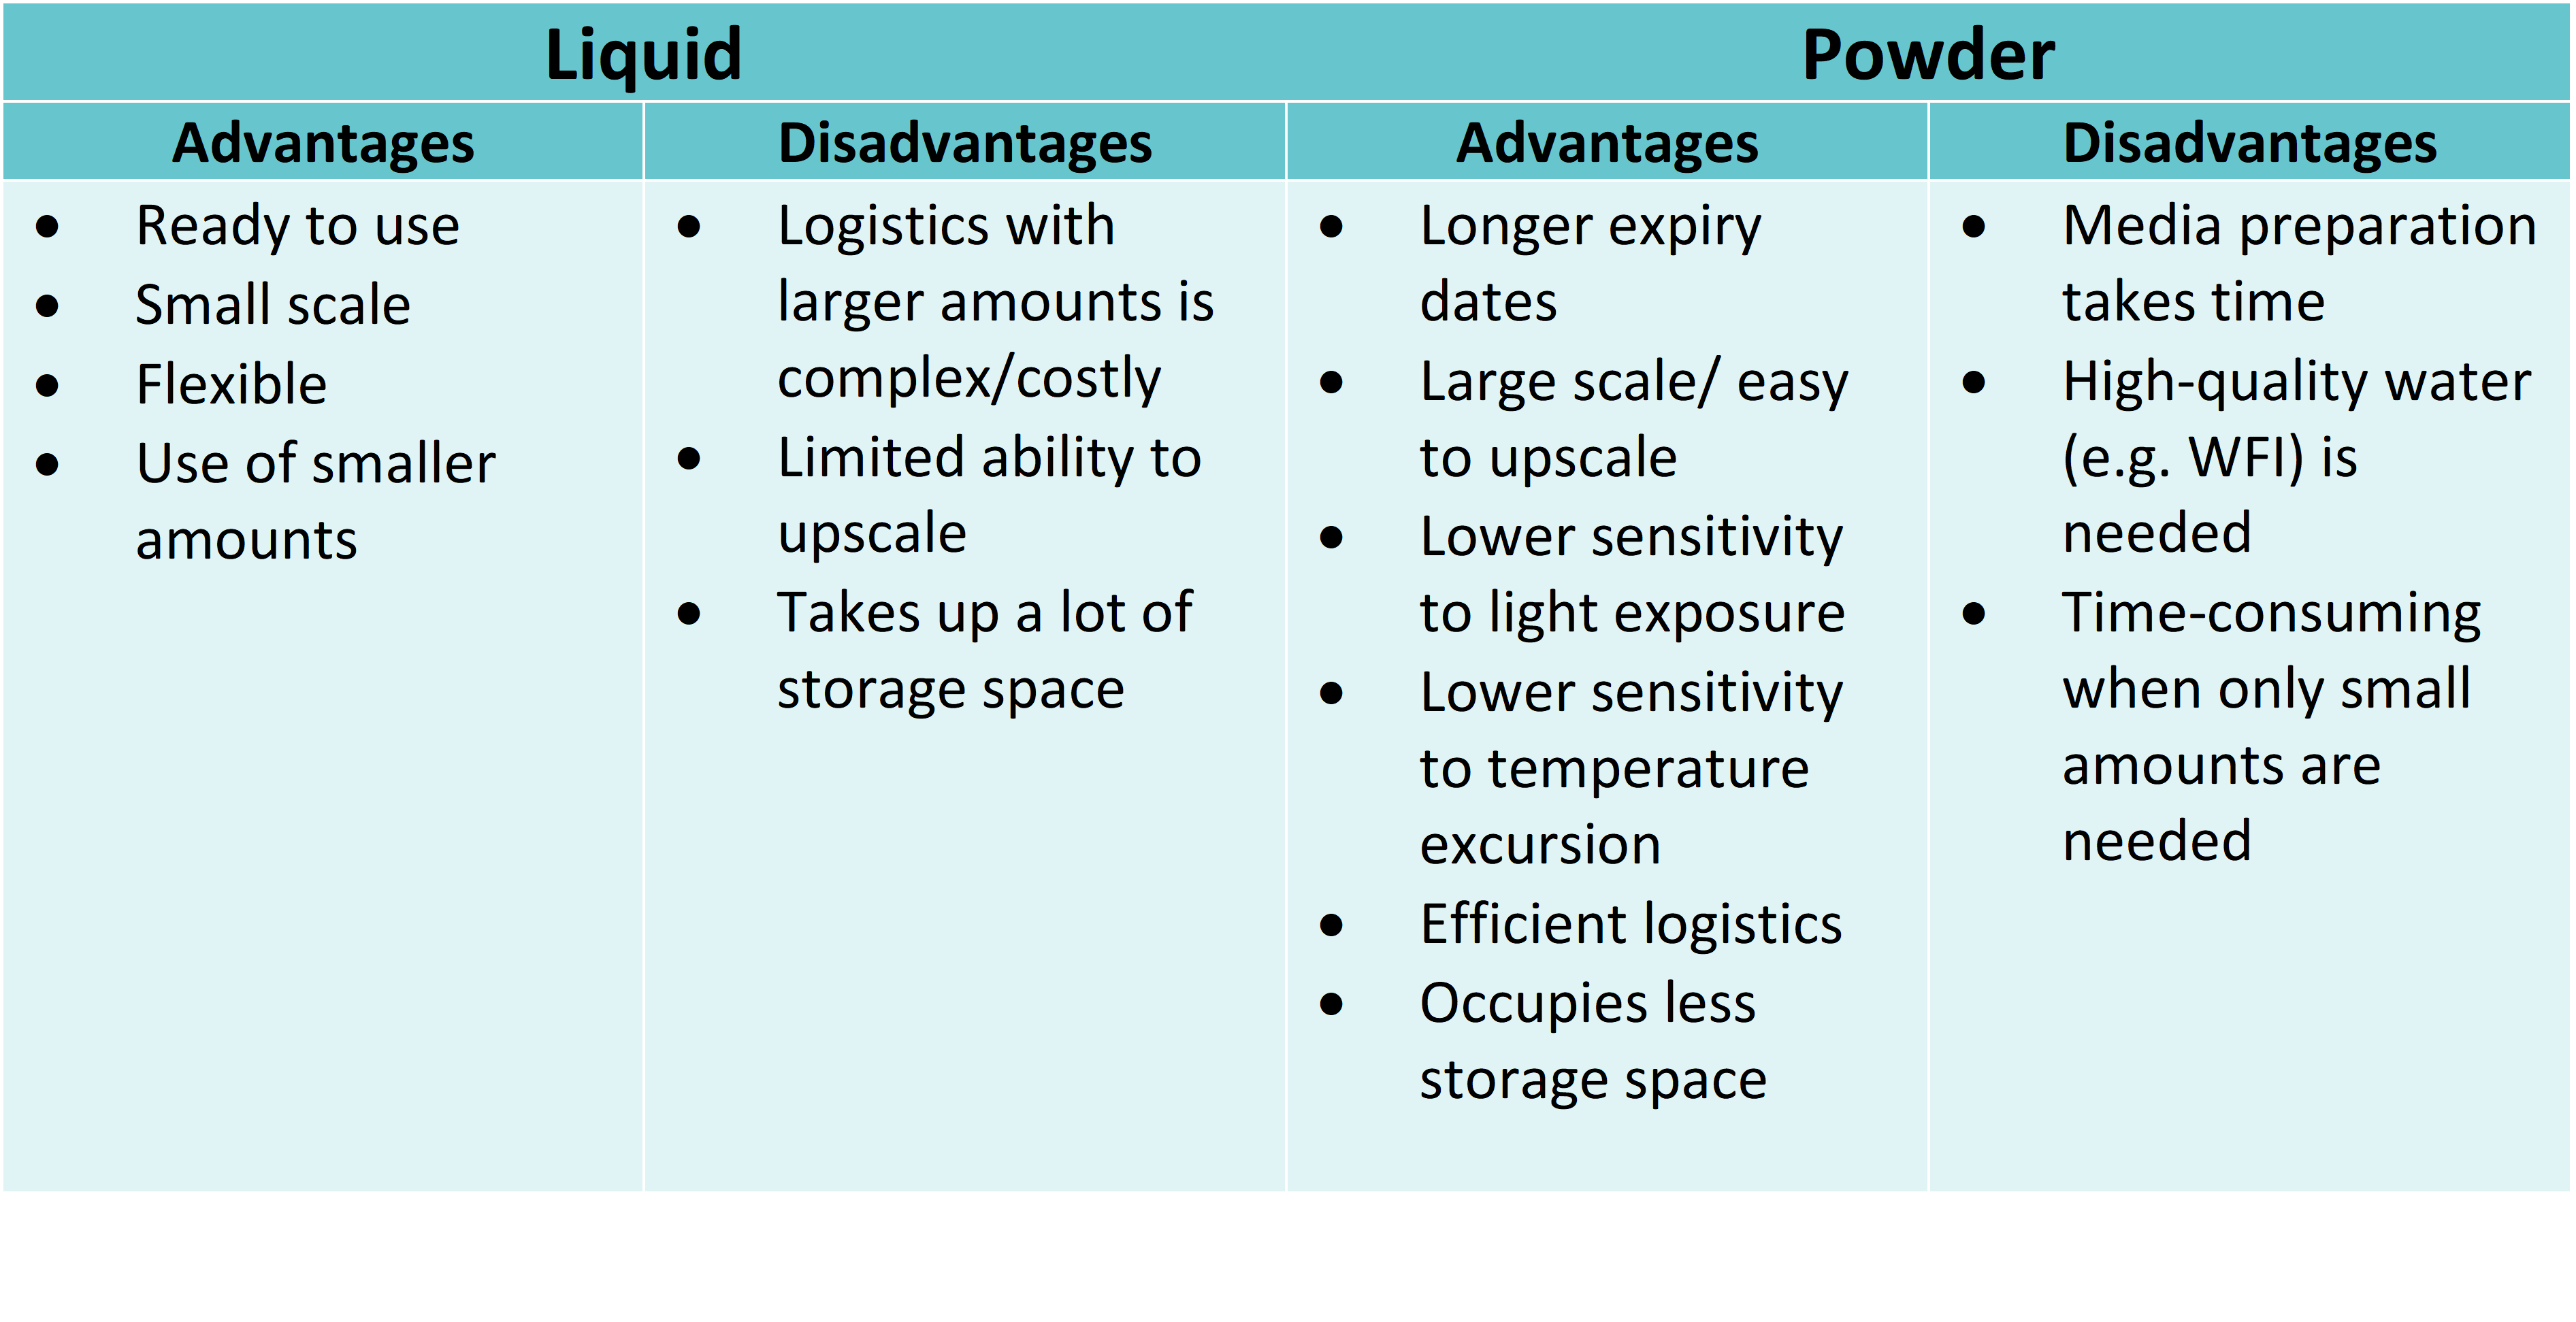 TABLE 1 Advantages and disadvantages of liquid and powdered media.